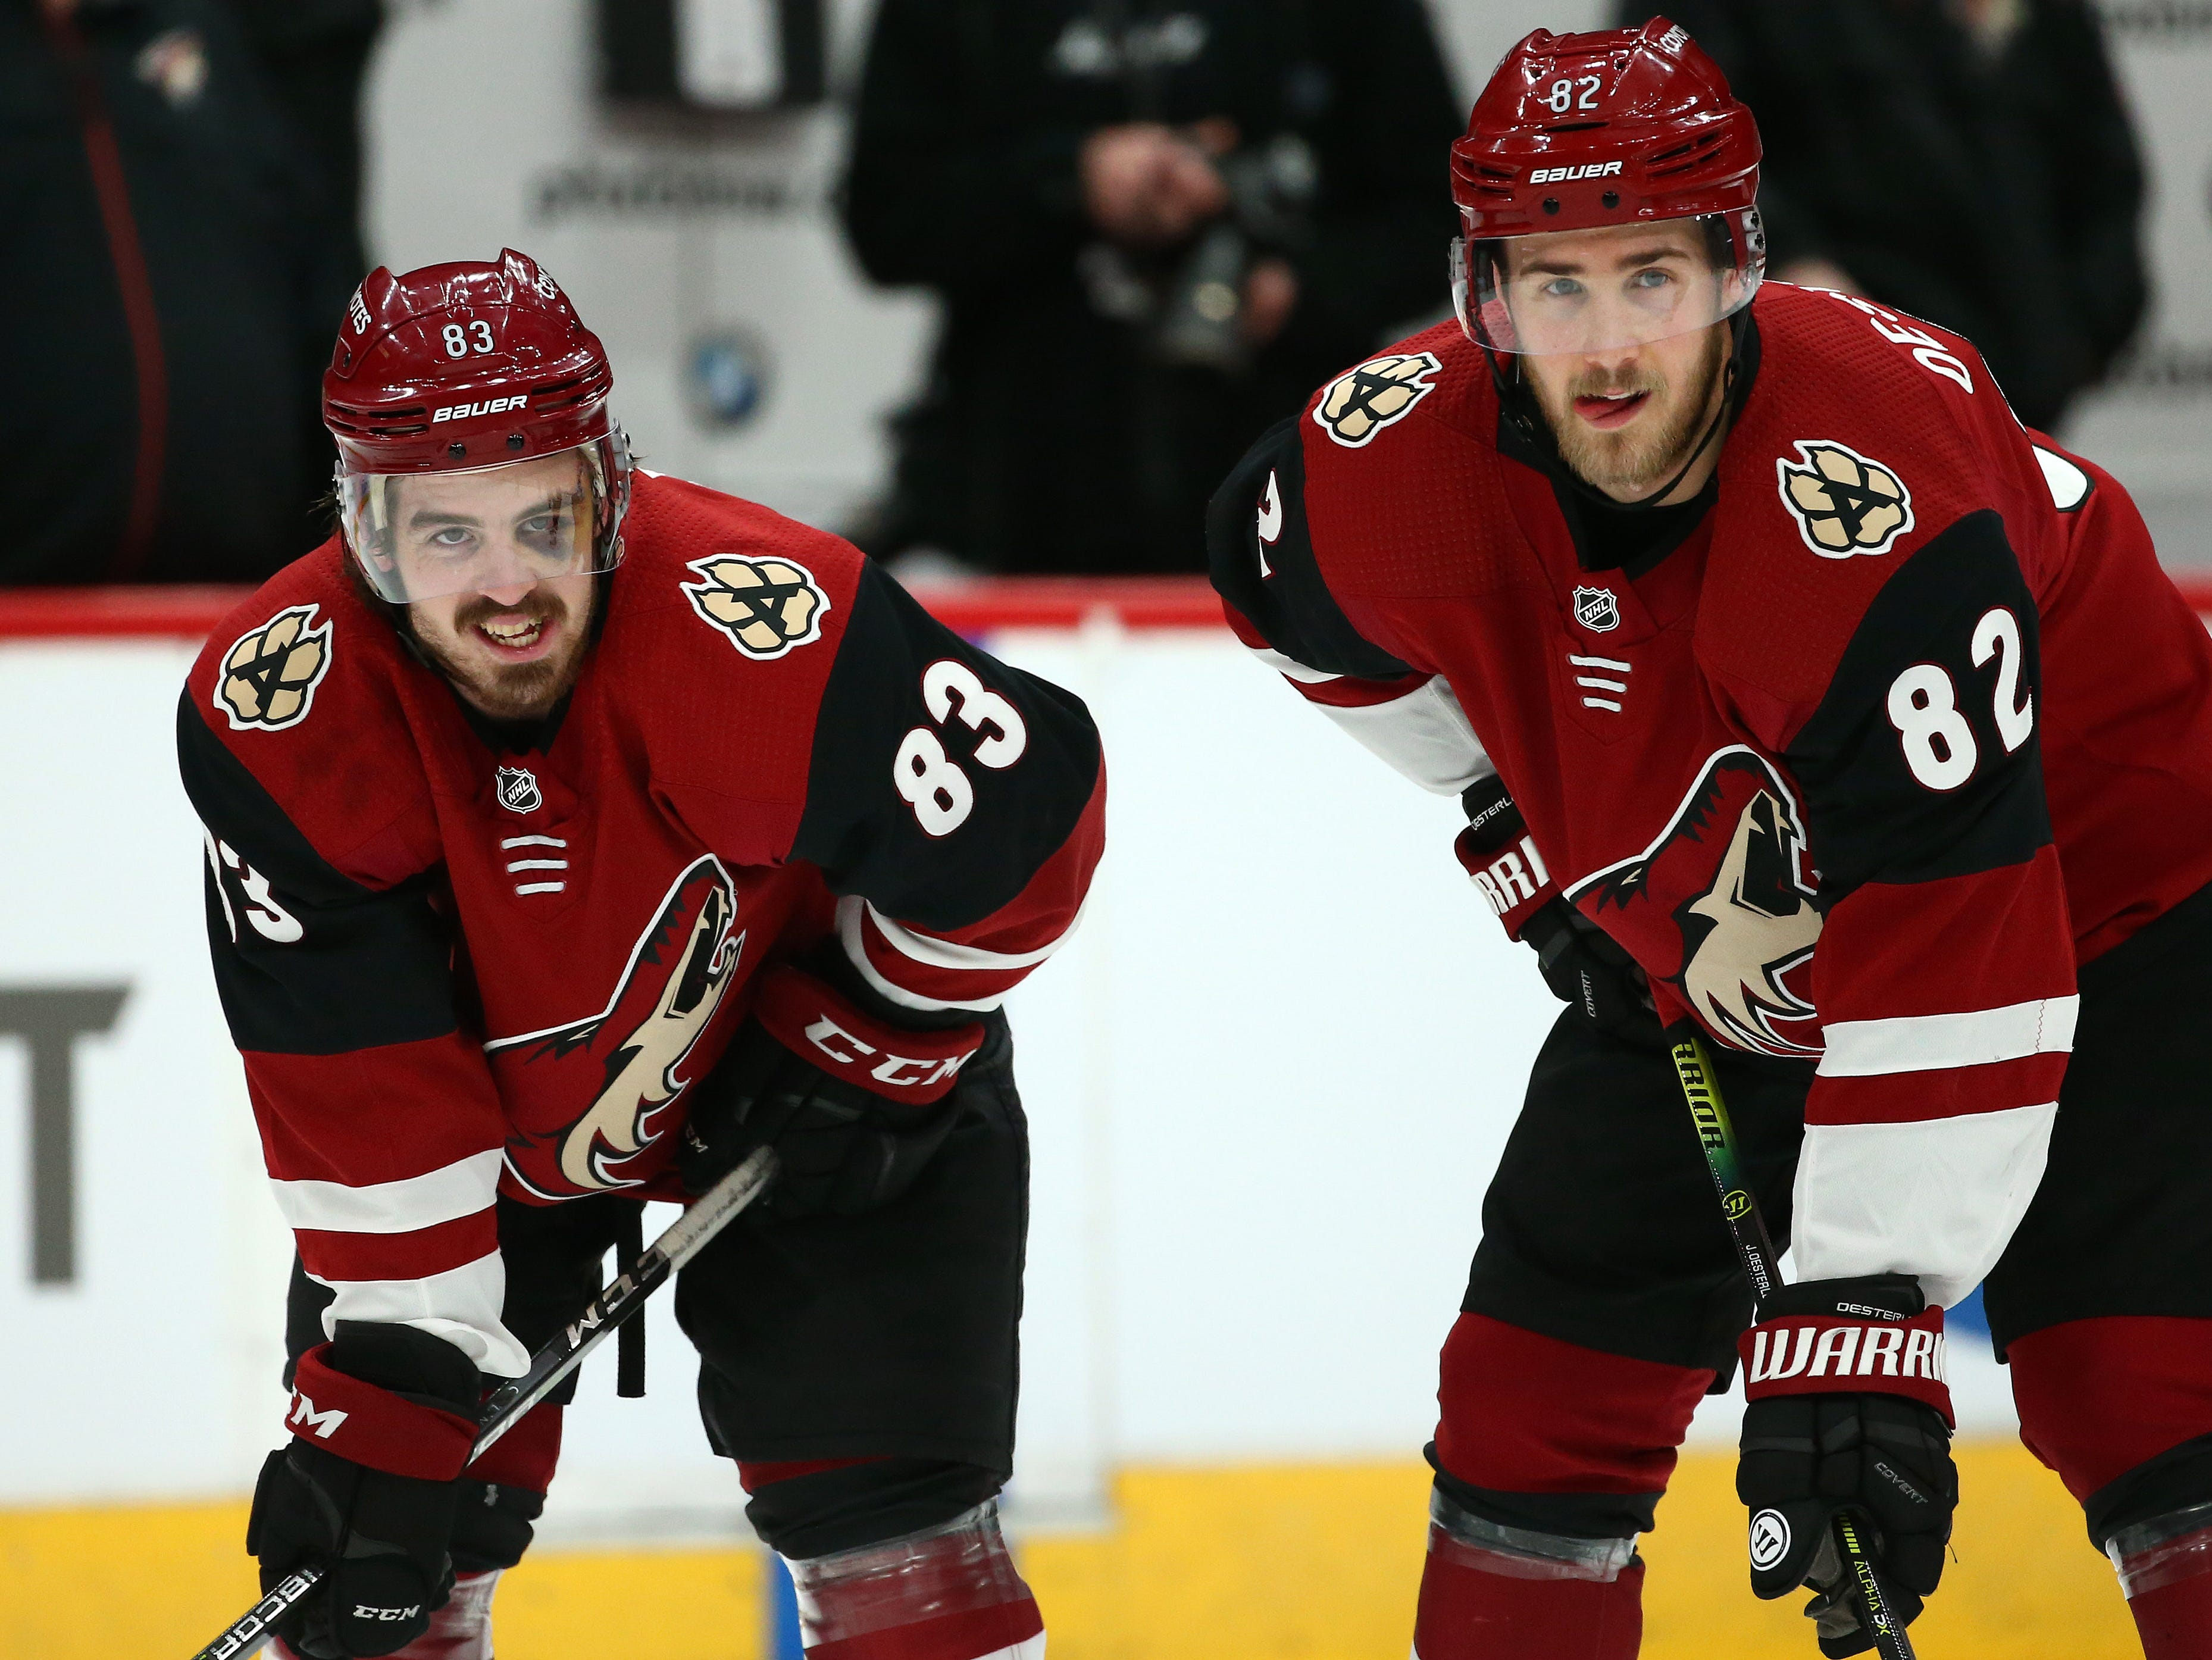 Arizona Coyotes rookie Conor Garland (83) and Jordan Oesterle (82) during warm-ups before playing the San Jose Sharks on Jan. 16 at Gila River Arena.